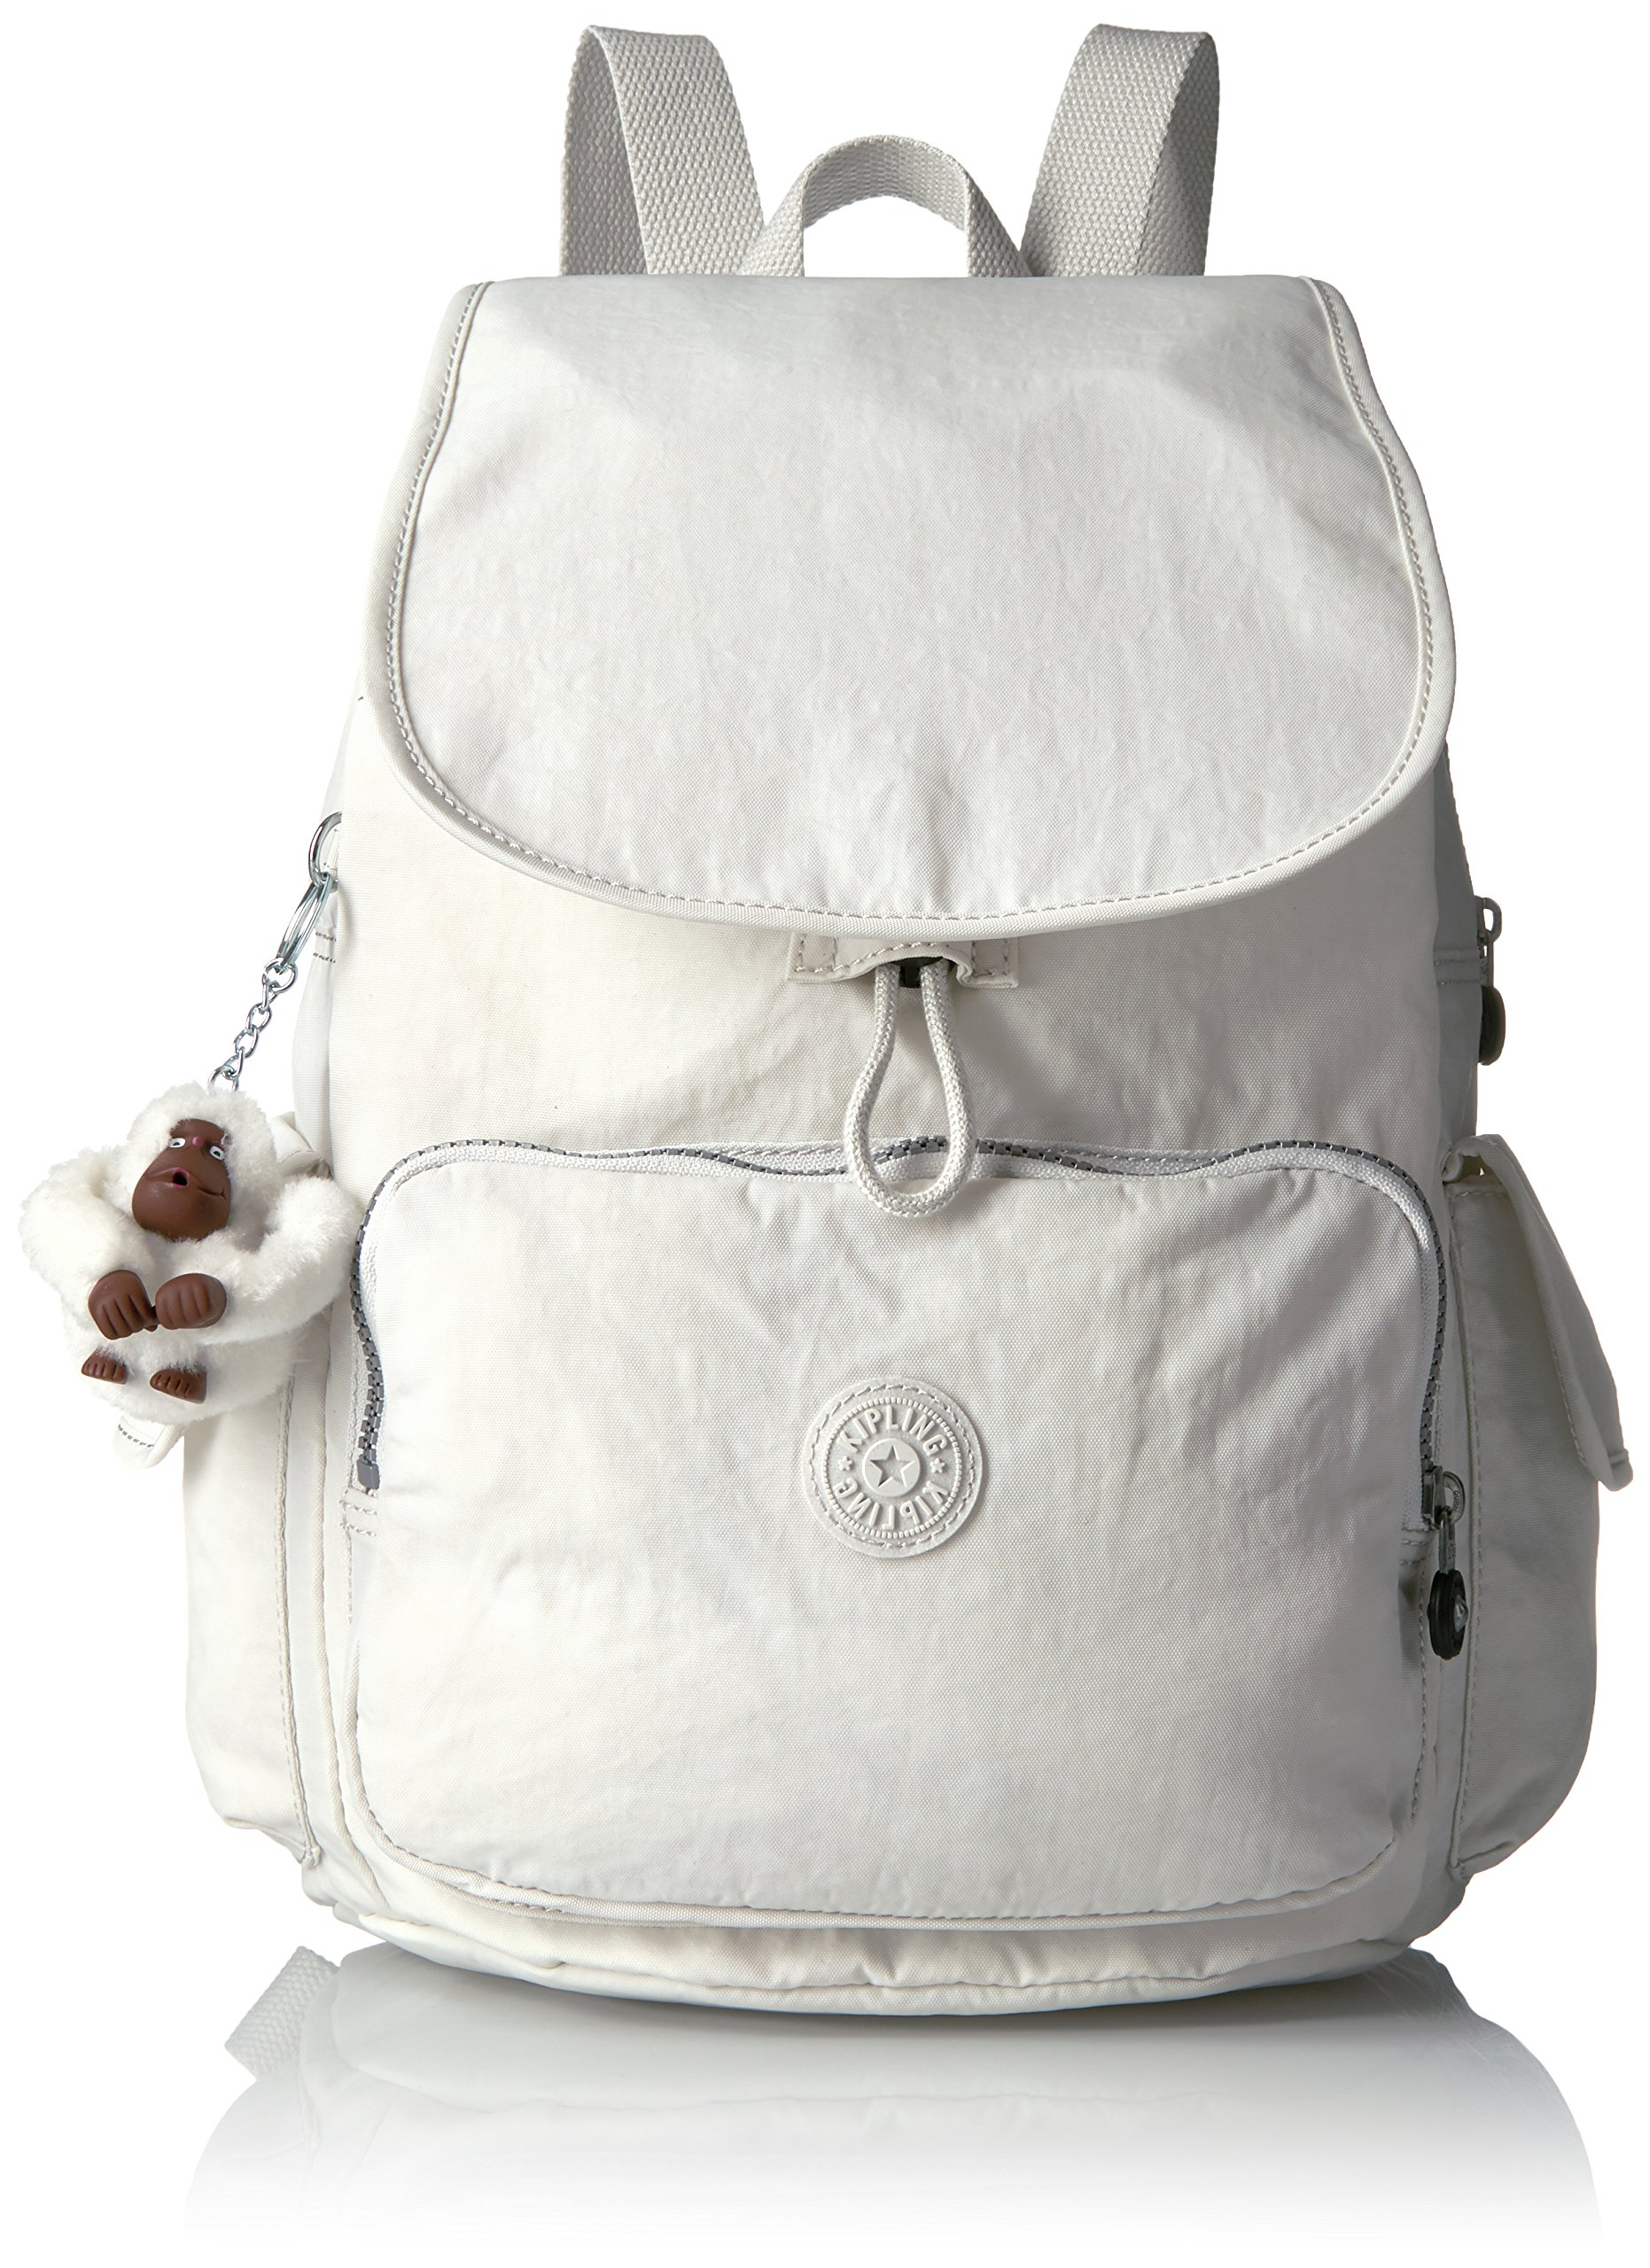 Kipling Women's Ravier Solid Backpack, Frosted by Kipling